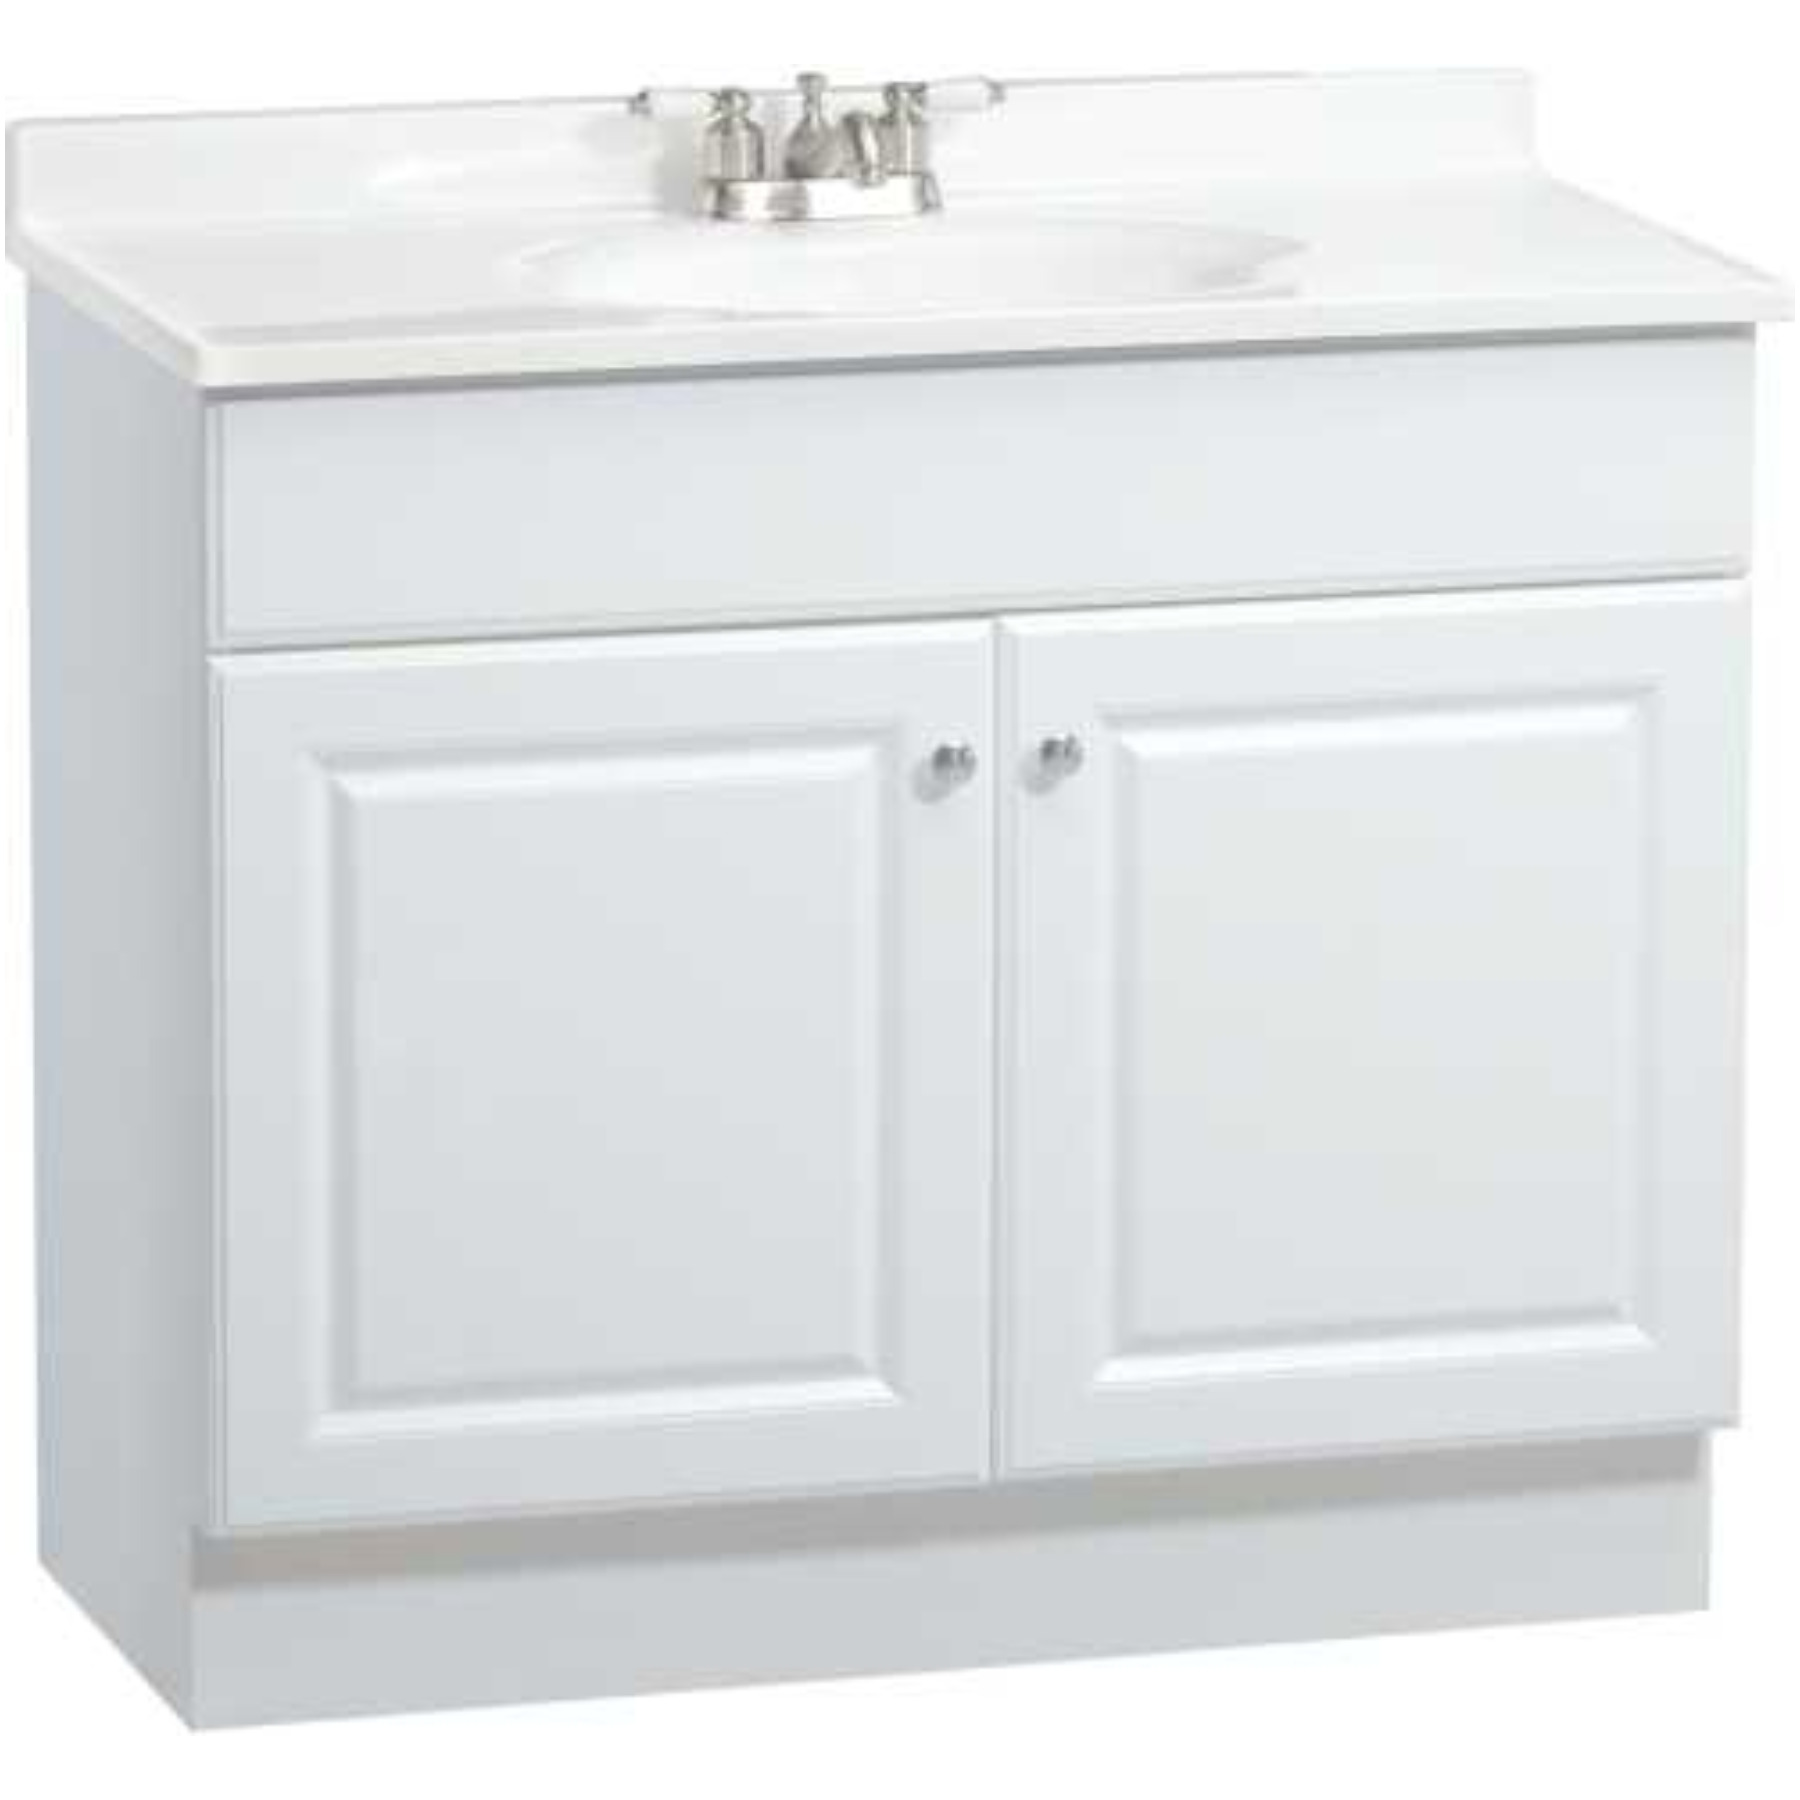 RSI HOME PRODUCTS RICHMOND BATHROOM VANITY CABINET WITH TOP, FULLY ASSEMBLED, 2 DOOR, WHITE, 36 X 31 X18""